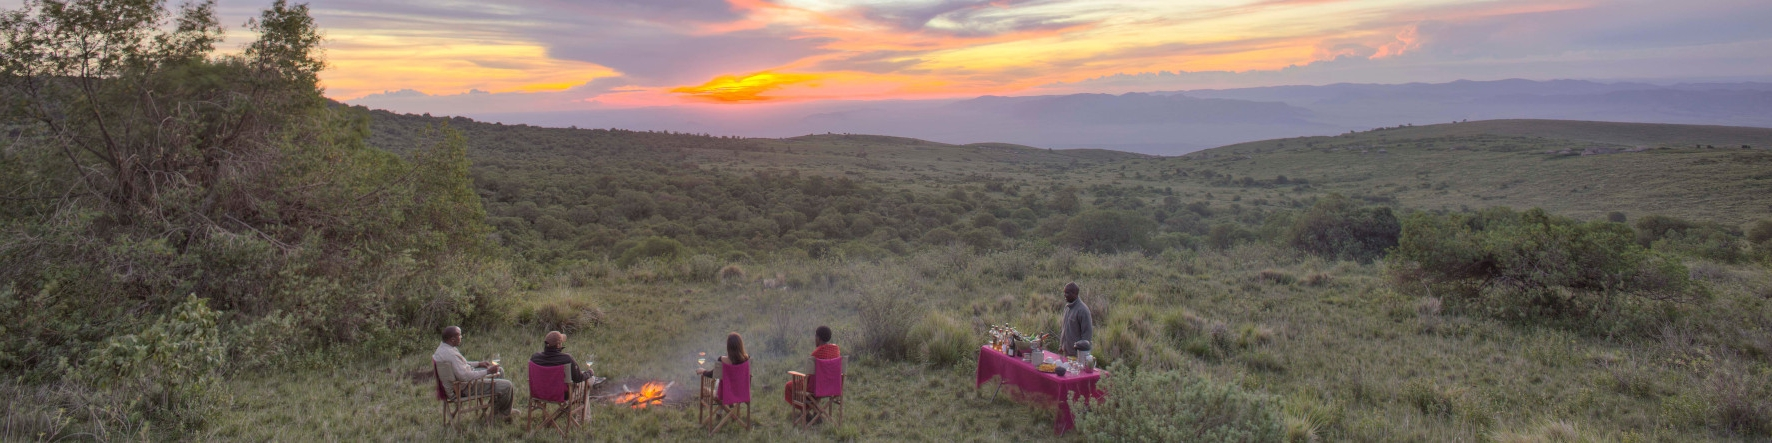 Tours and Safaris to Ngorongoro Crater Region Tanzania Highlands Sundowners